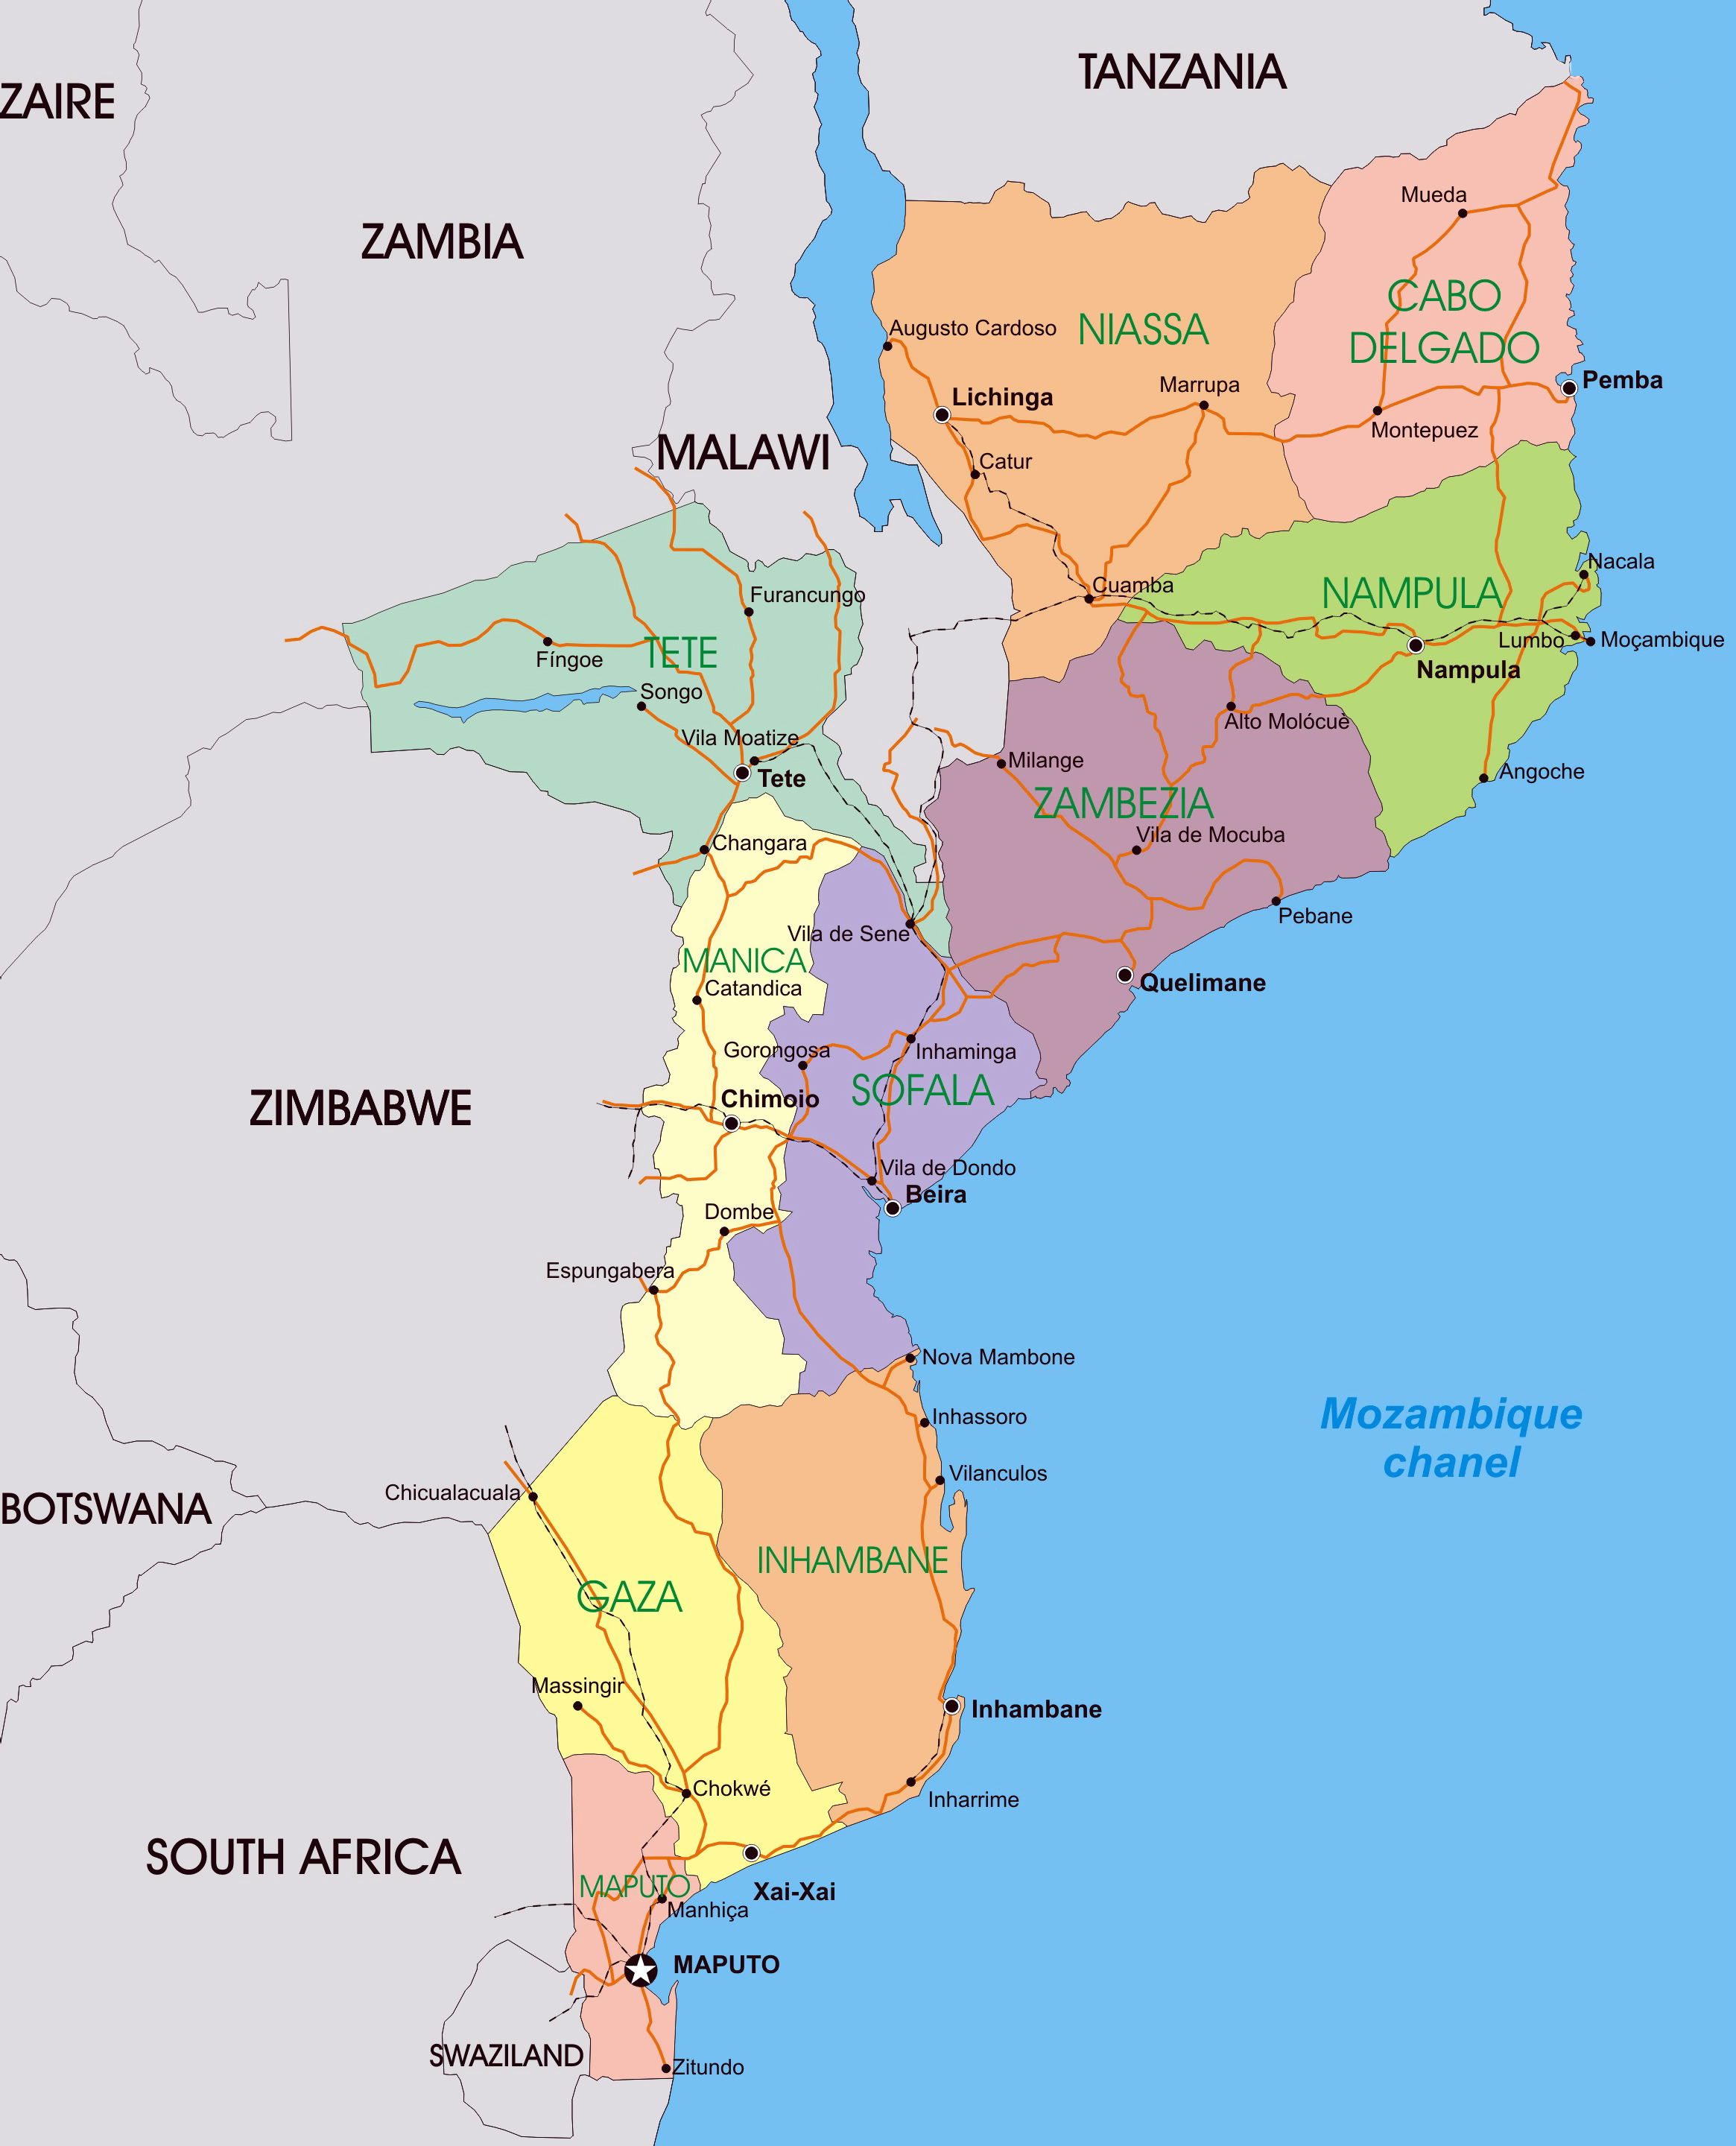 south america physical map with Large Detailed Political And Administrative Map Of Mozambique on Benin Physical Maps in addition Slovakia Road Maps furthermore Togo Physical Maps together with Burundi Maps in addition Map.